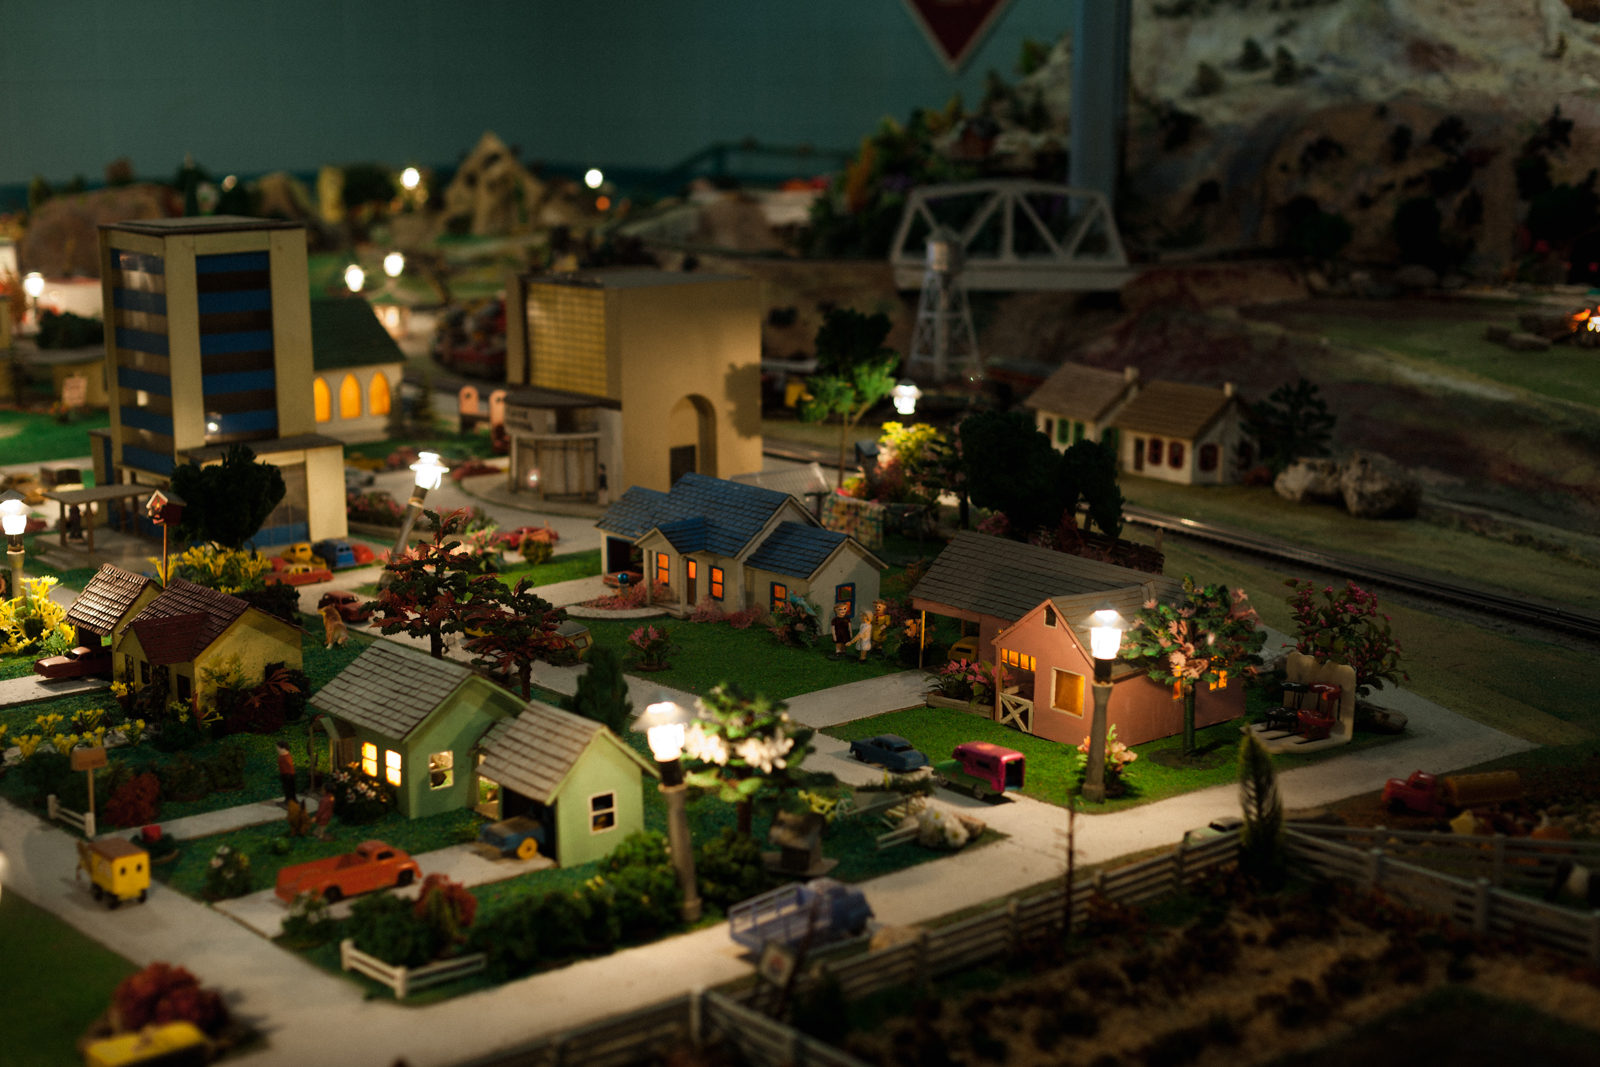 tiny town trains night-1